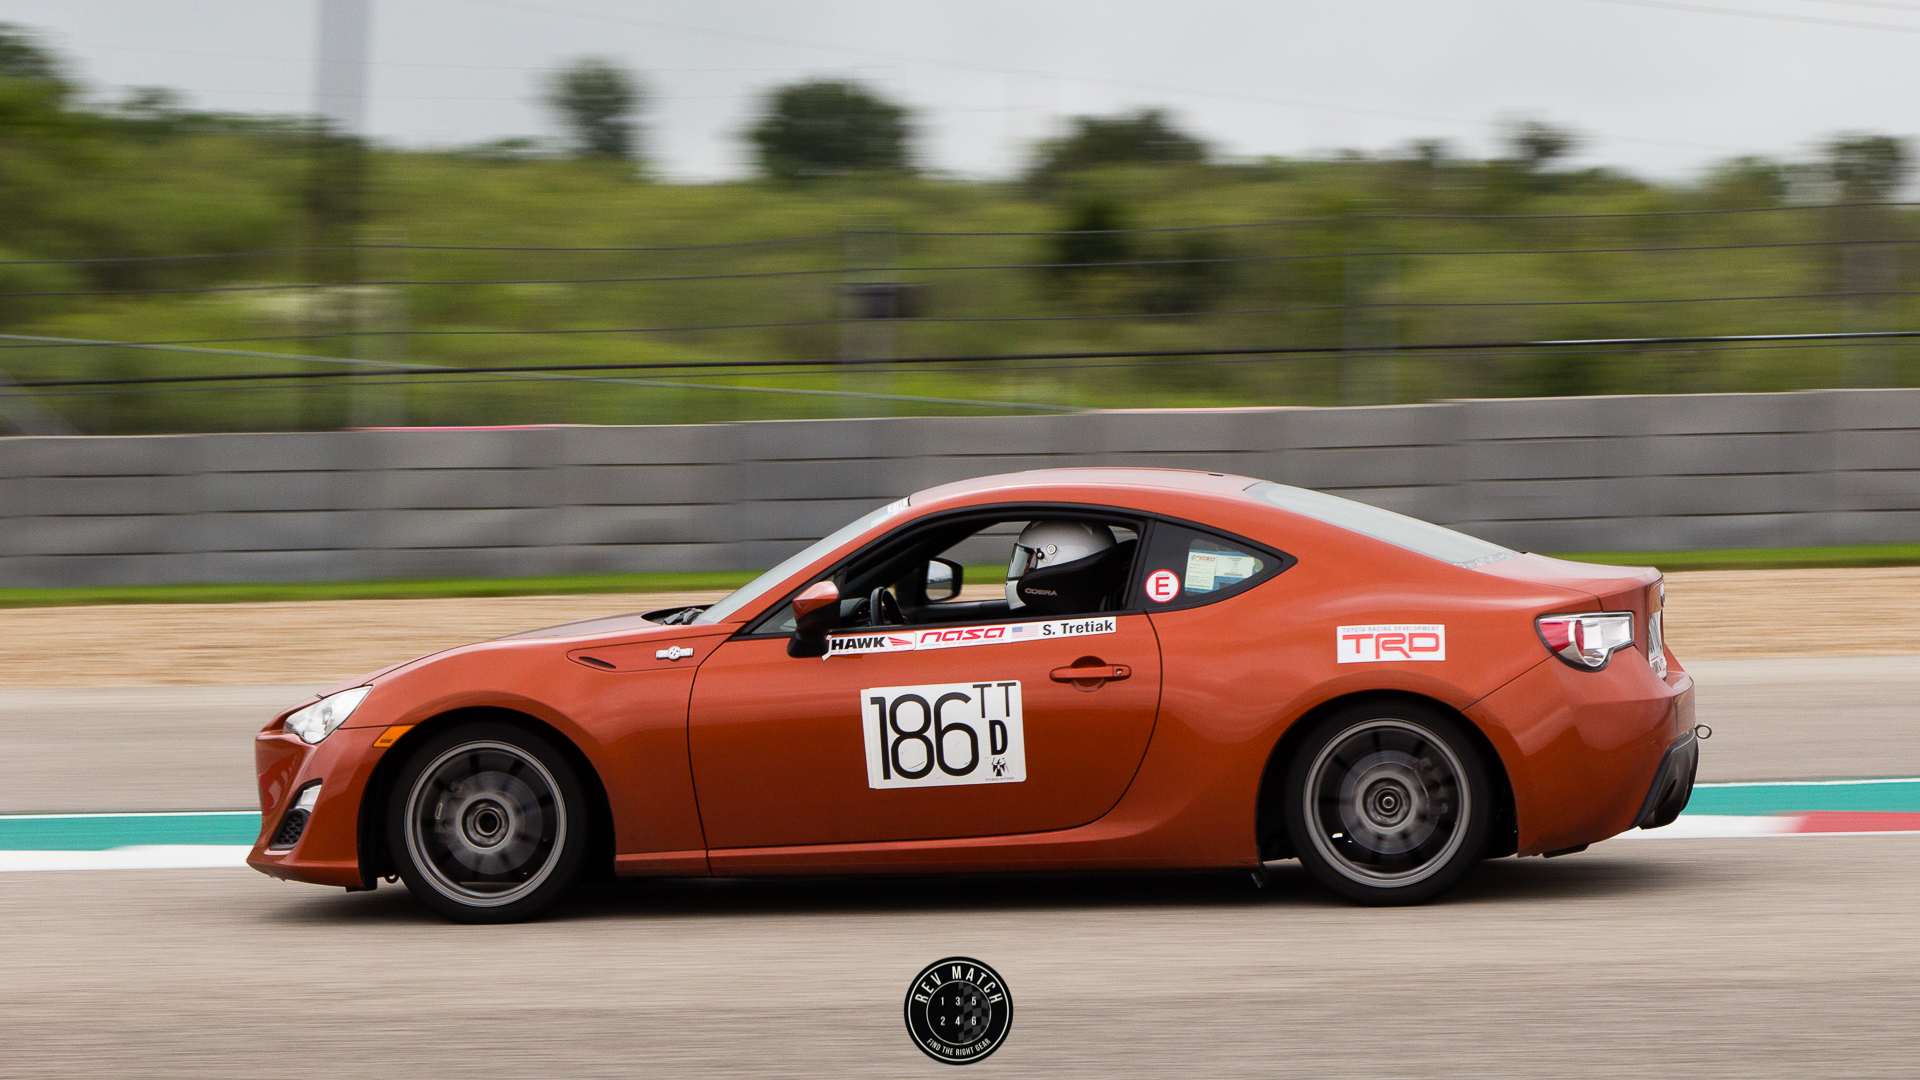 RMM x NASA at COTA 2018-112.jpg